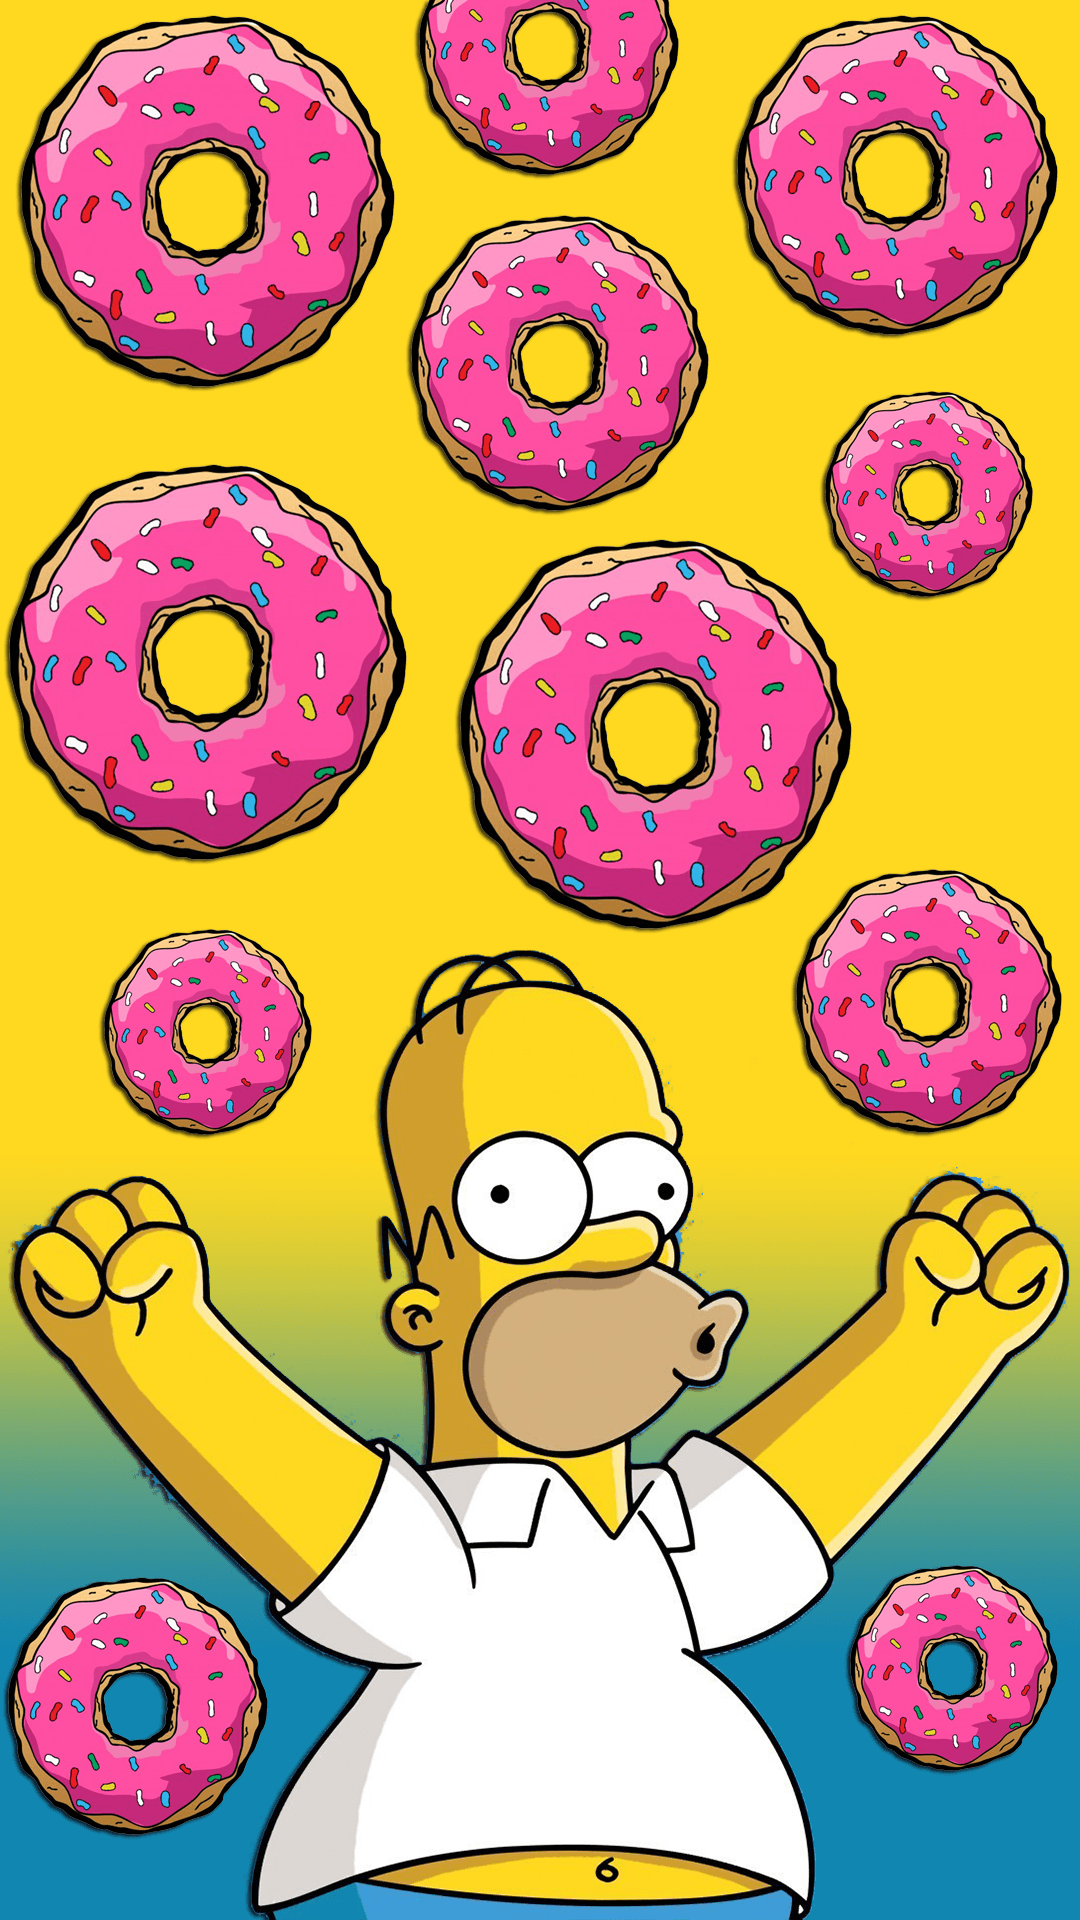 Donut Wallpapers - Wallpaper Cave